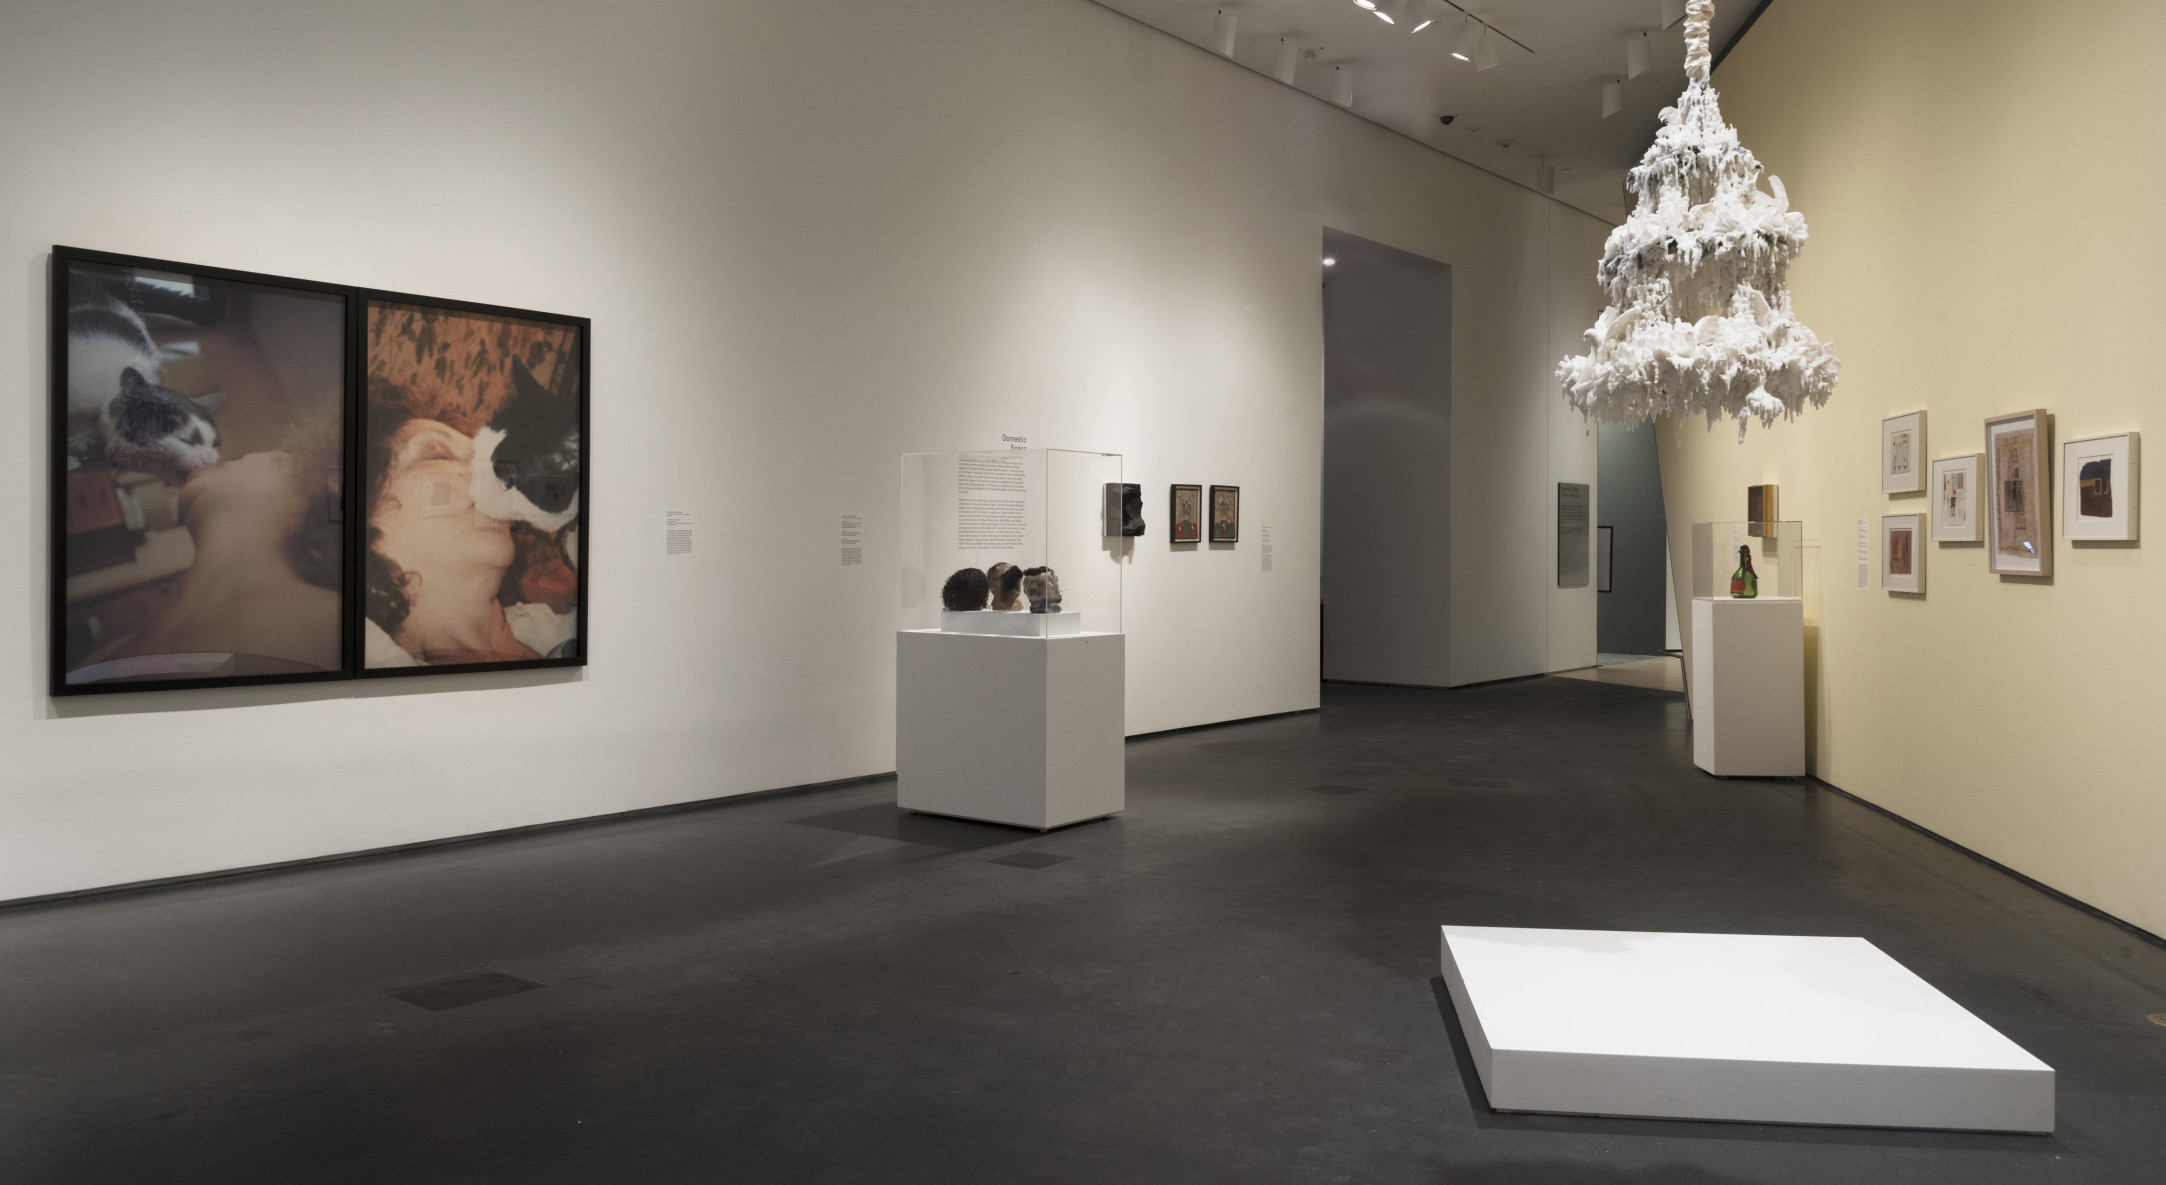 Installation view of Carolee Schneemann in Out of Place: A Feminist Look at the Collection at Brooklyn Museum, 2020